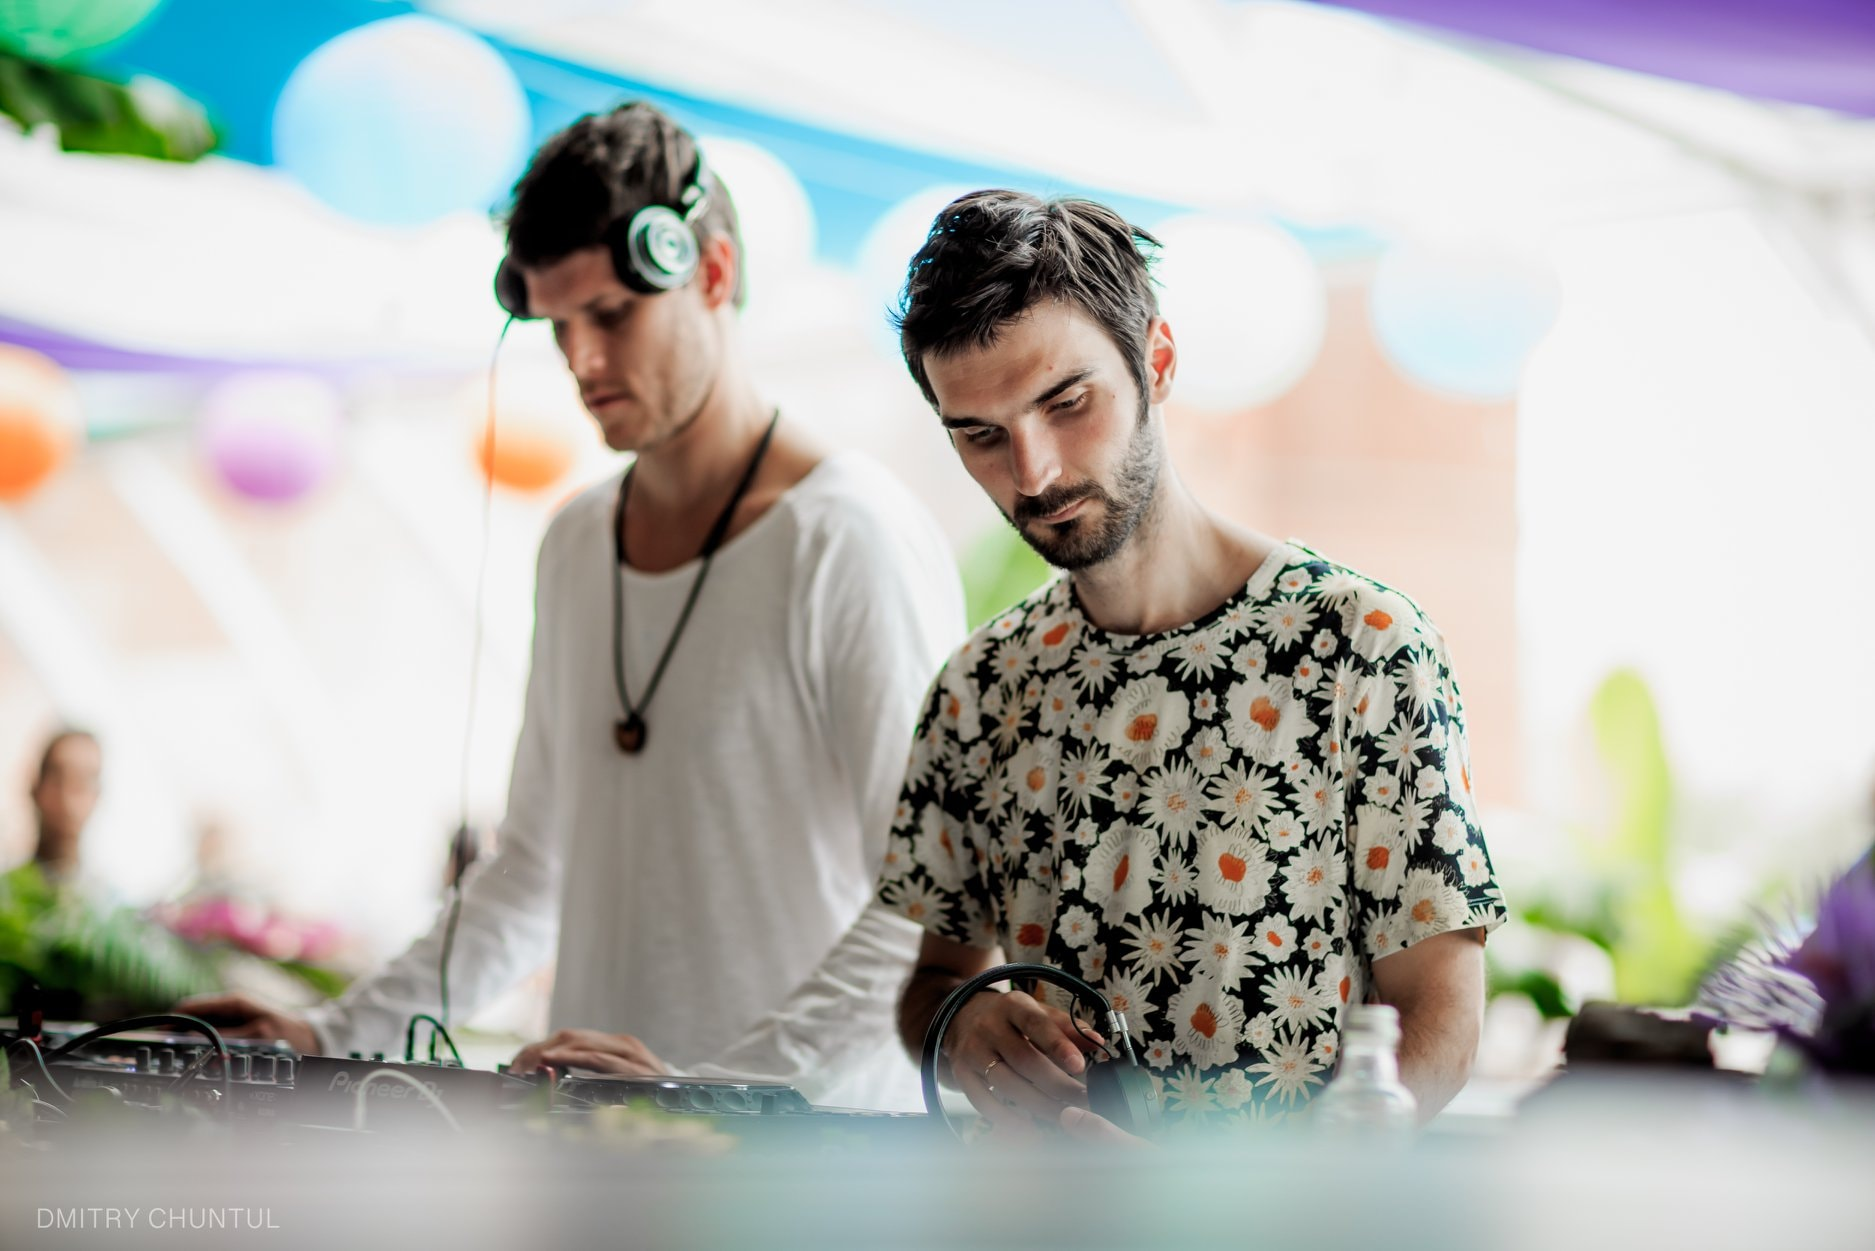 Gorje Hewek & Izhevski Select: 5 Perfect Tracks For A Late Summer Afternoon Party